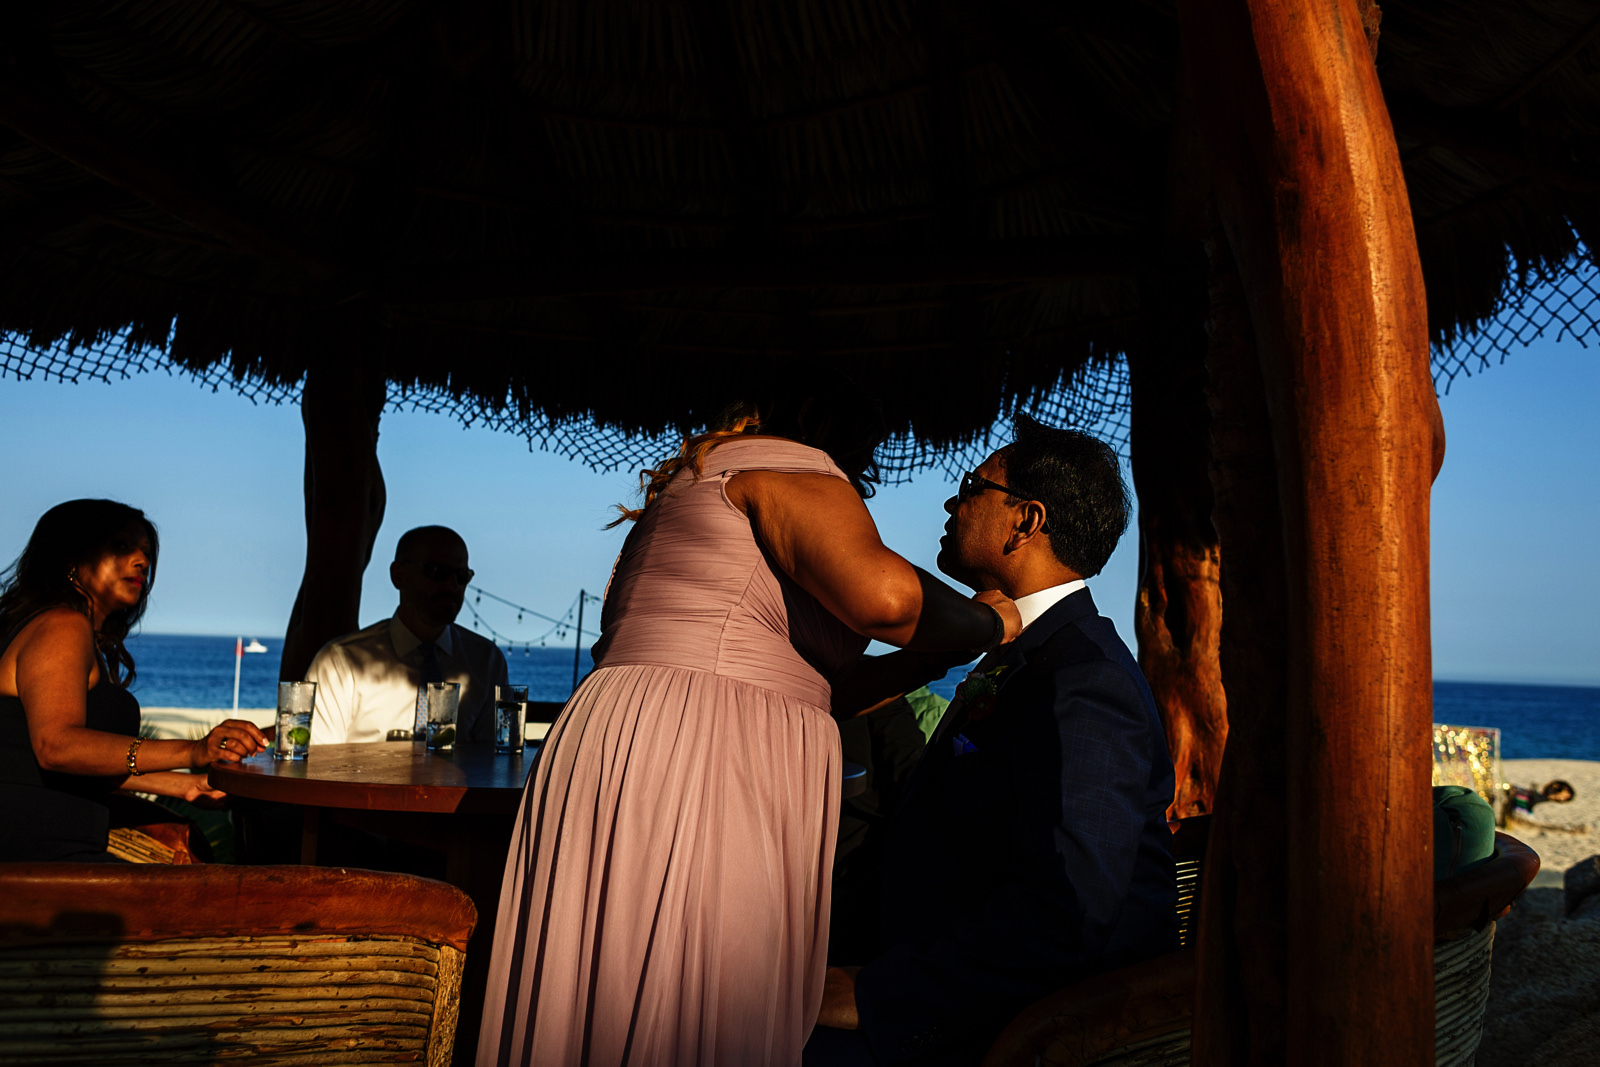 A guest is getting his bow tie adjusted by another guest under a palapa